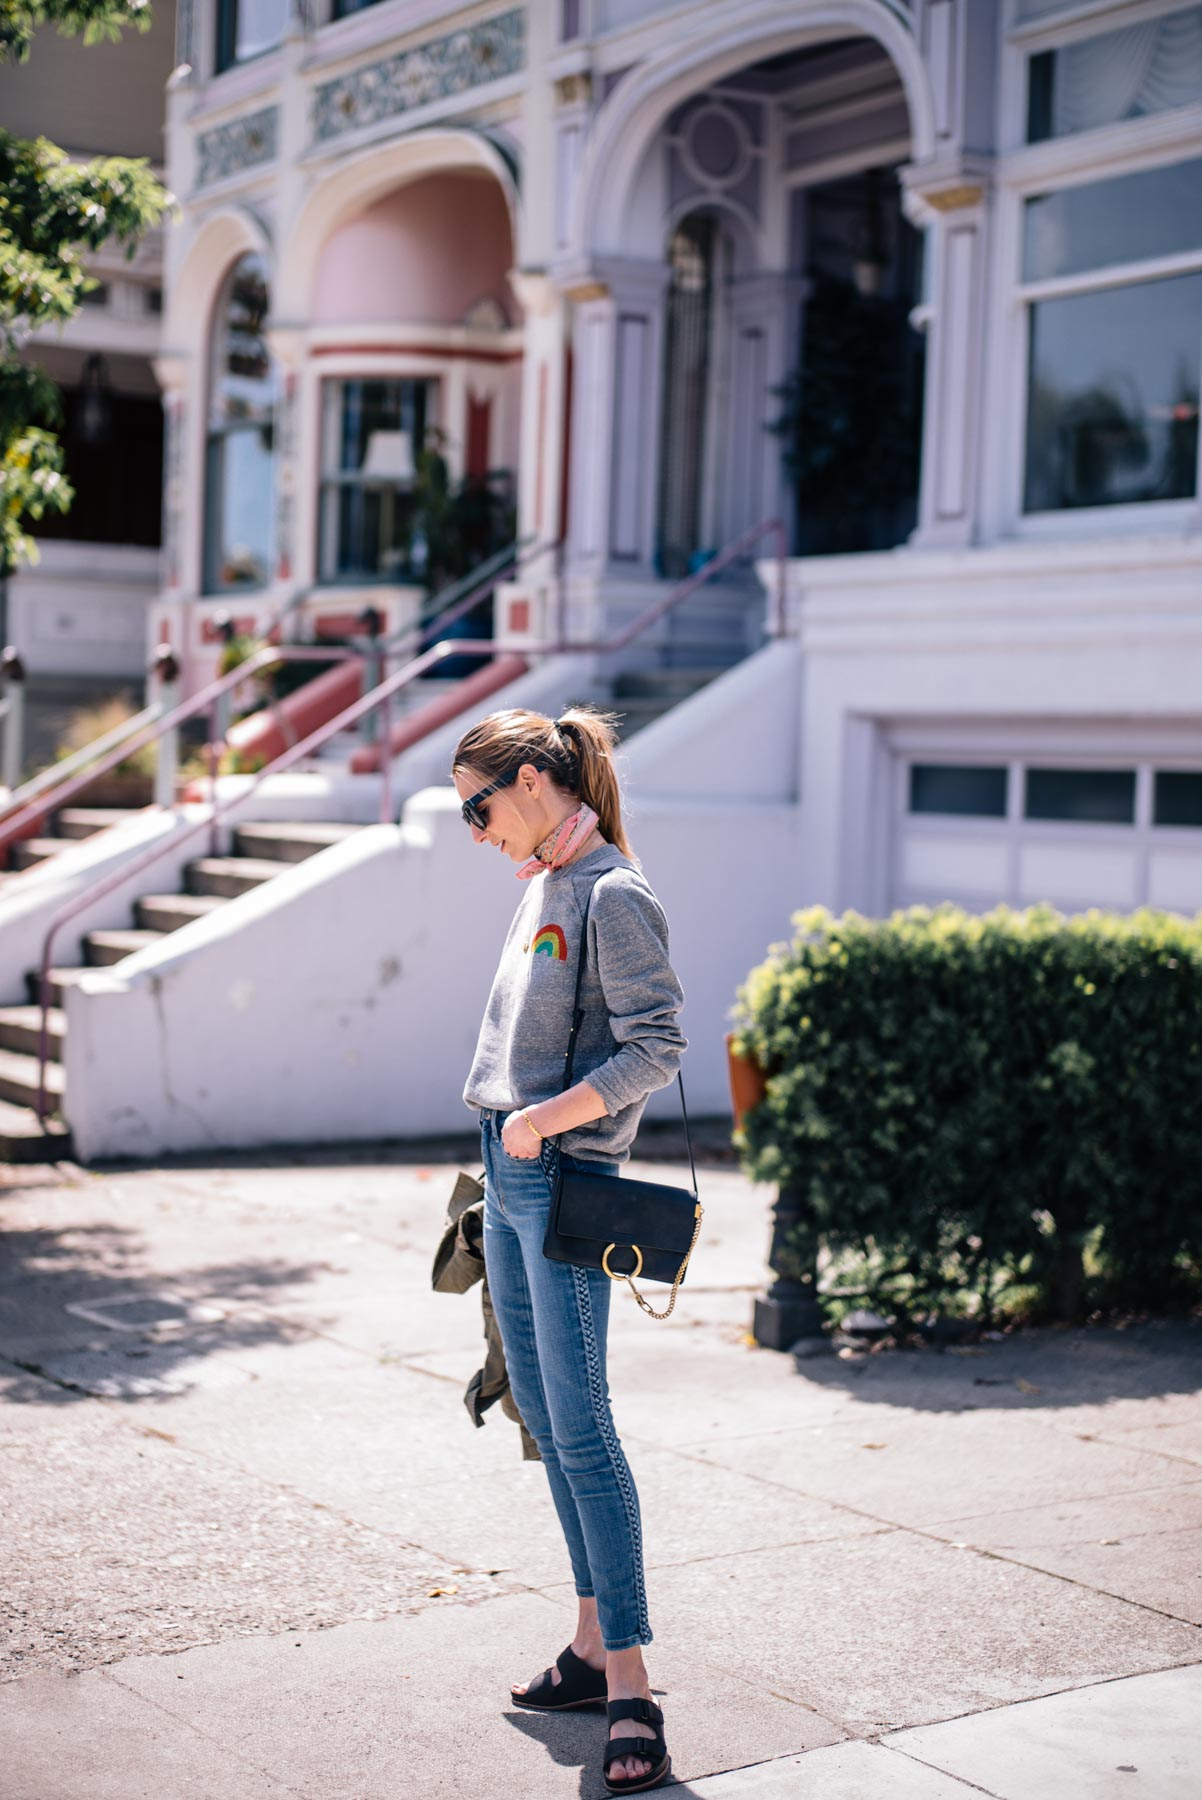 Jess Ann Kirby wears a Chloe bag, Joes Jeans and Kork-Ease sandals in San Francisco